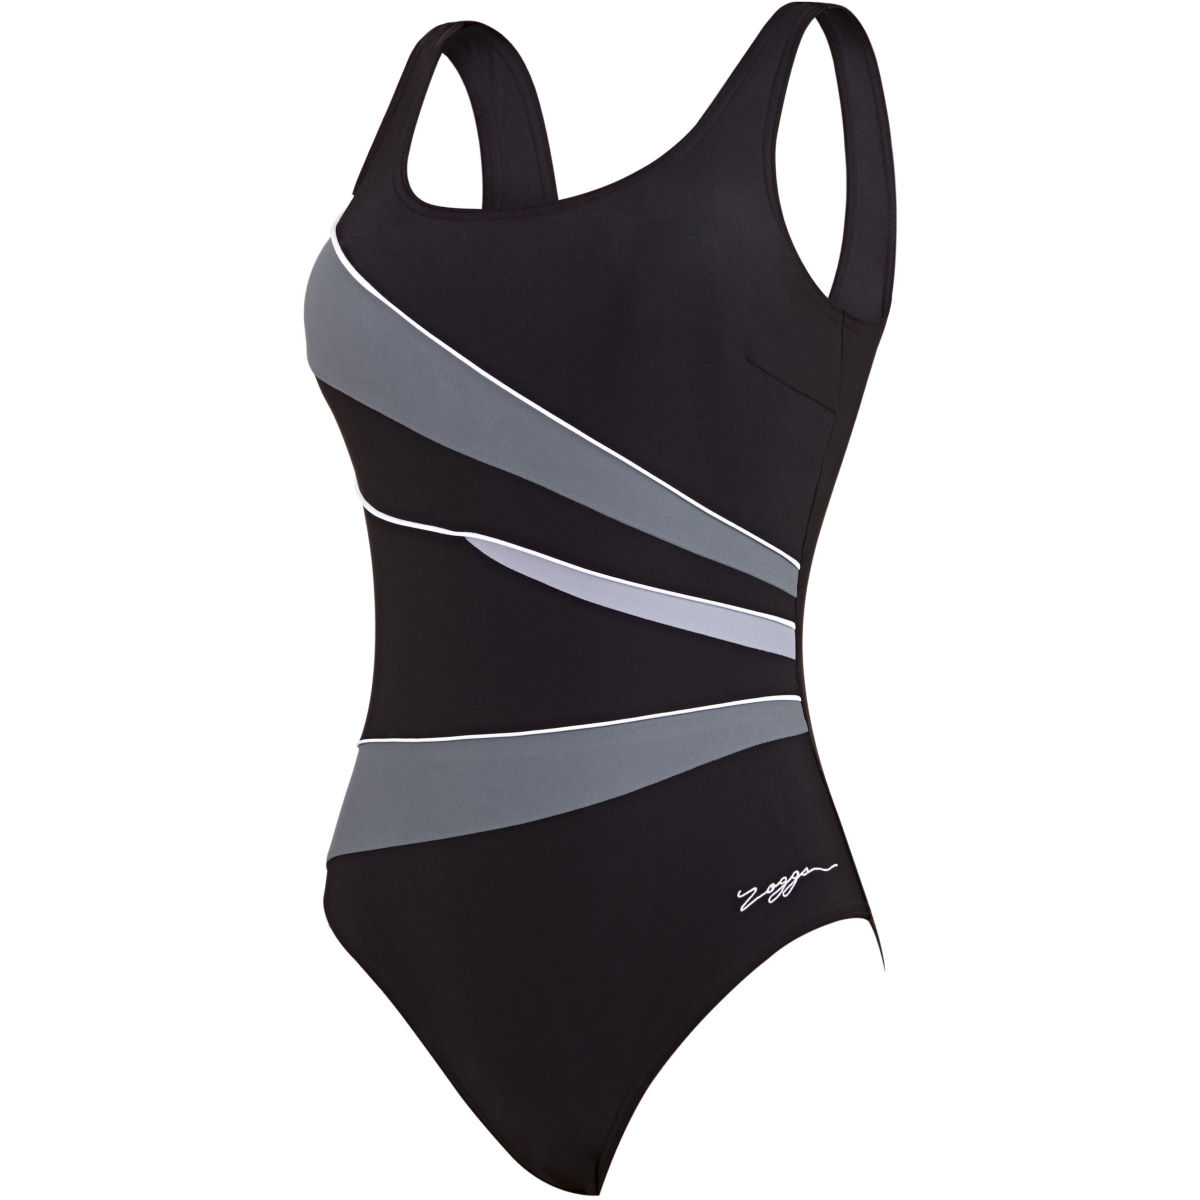 Image of Zoggs Womens Casuarina Scoopback One Piece Swimsuits